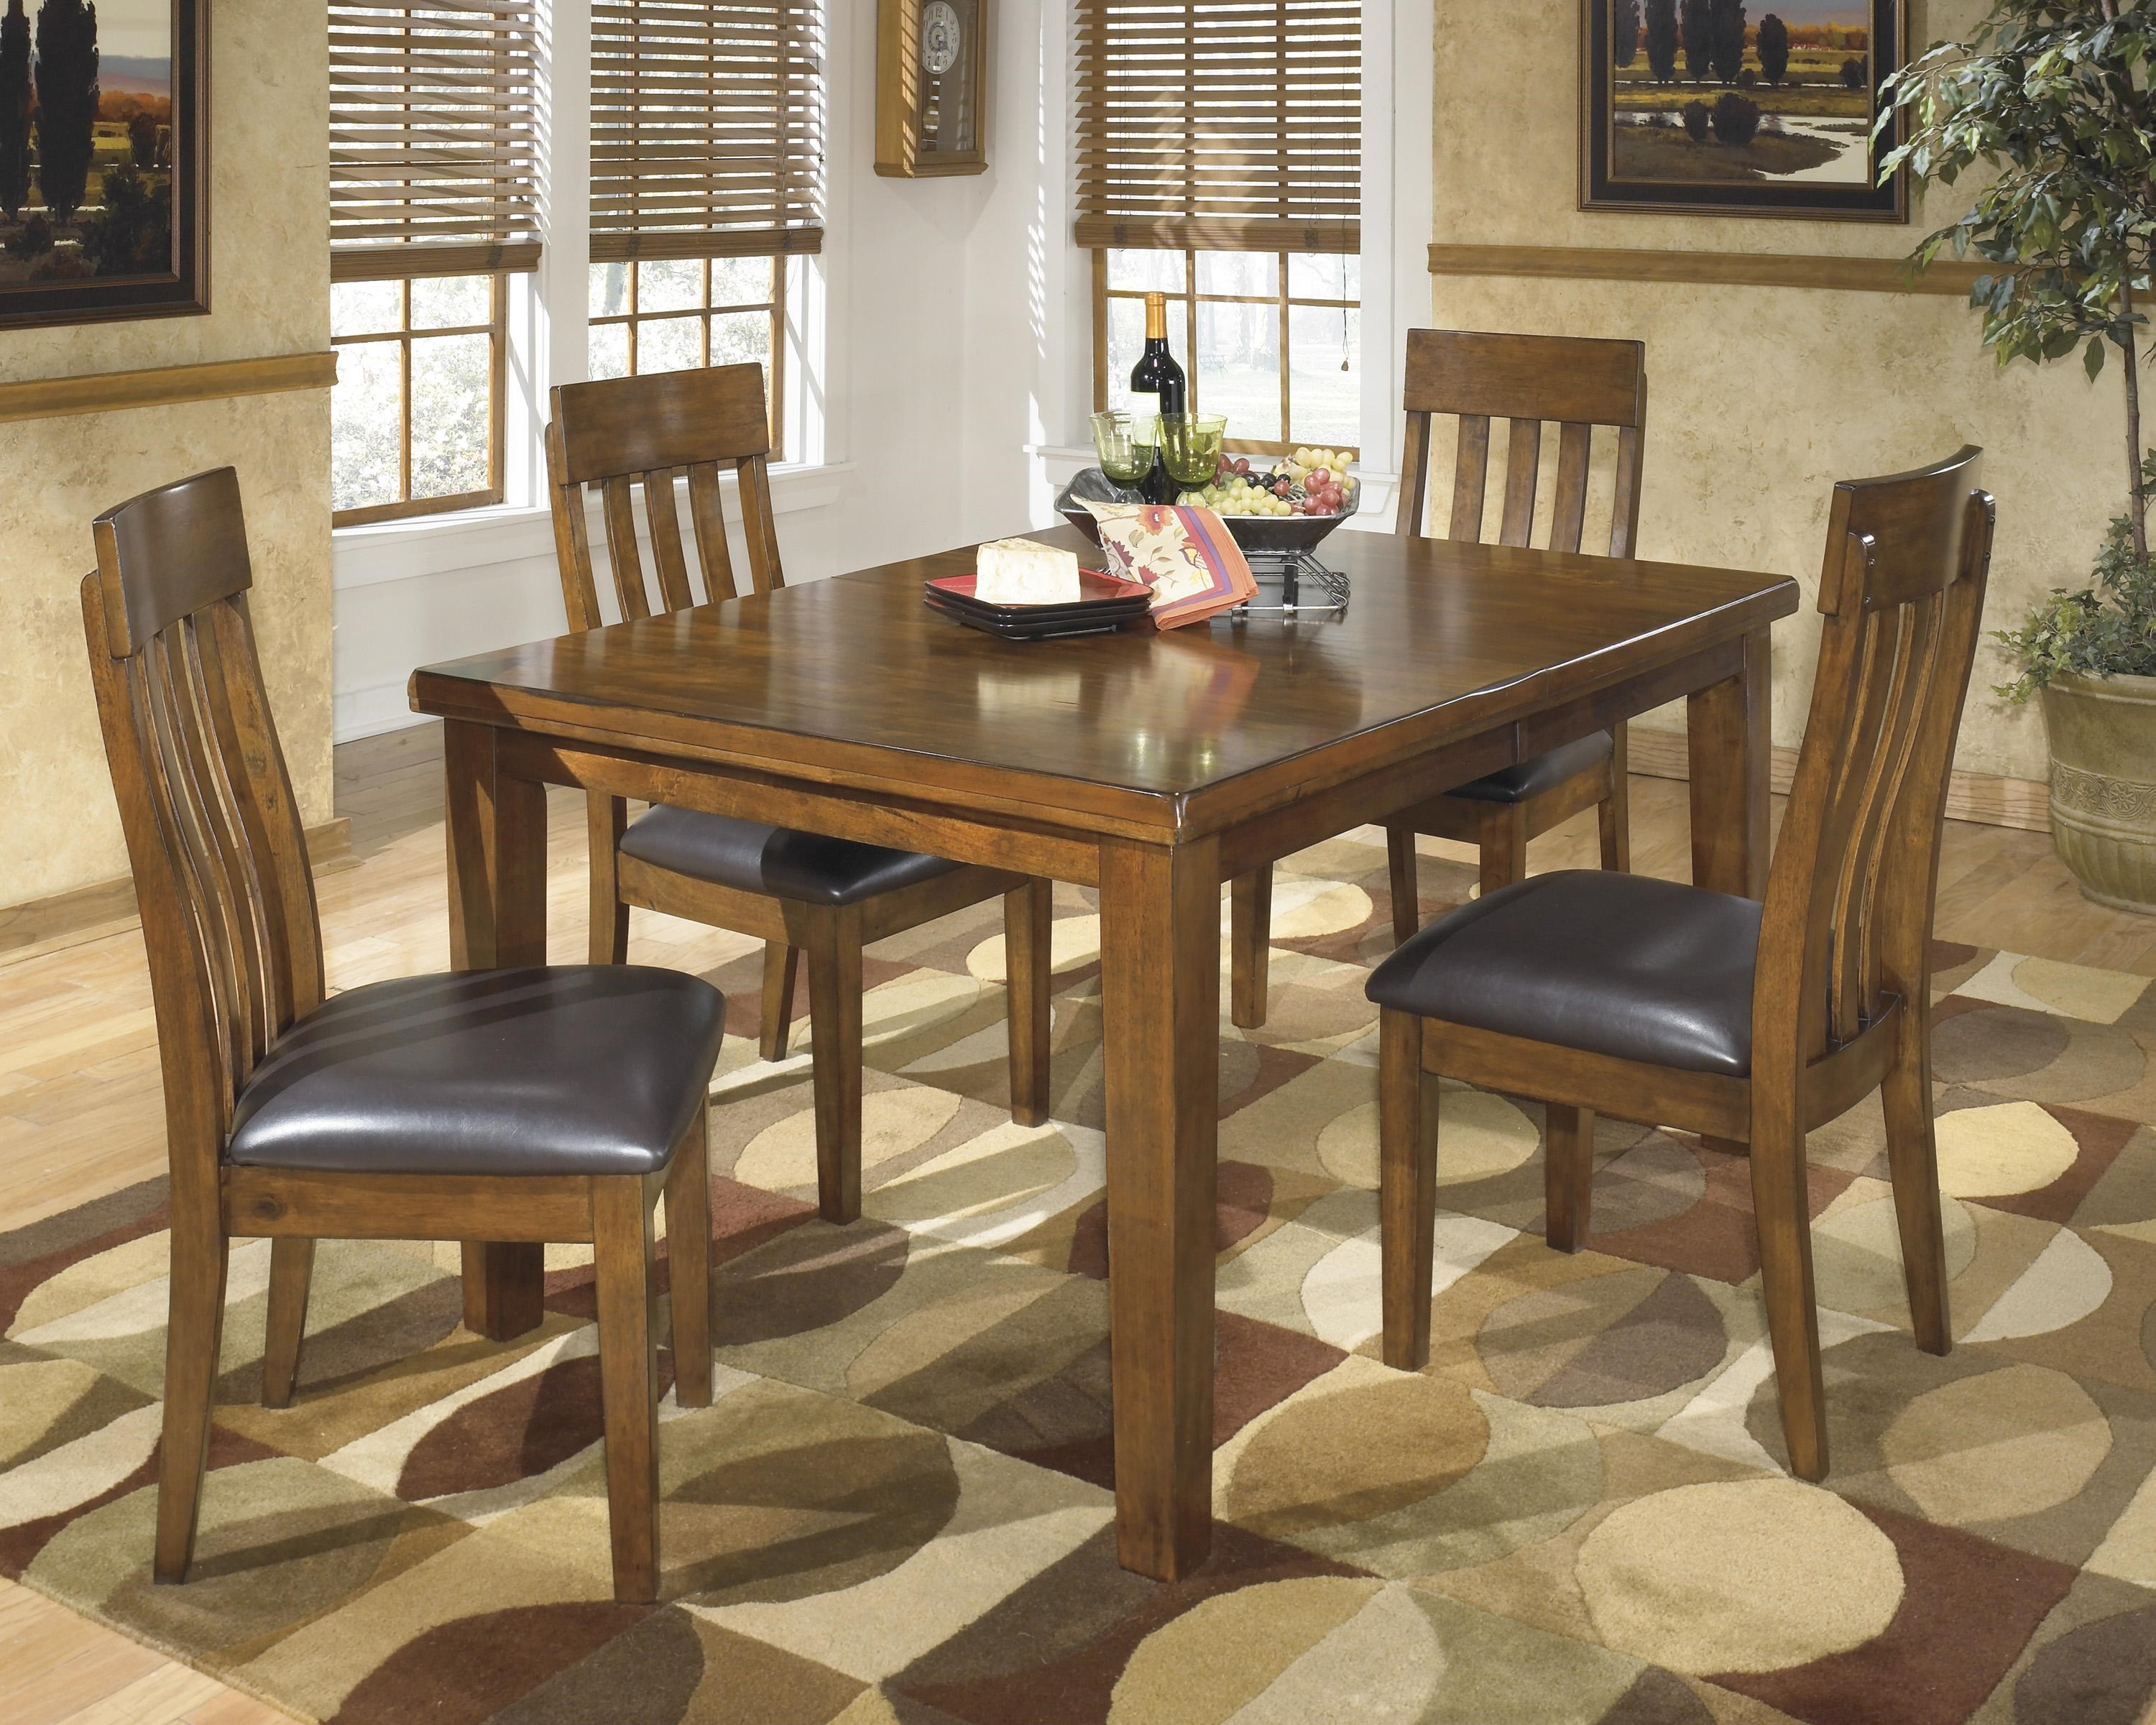 Signature Design By Ashley Ralene Casual 5 Piece Dining Set With Butterfly  Extension Leaf   Royal Furniture   Dining 5 Piece Sets